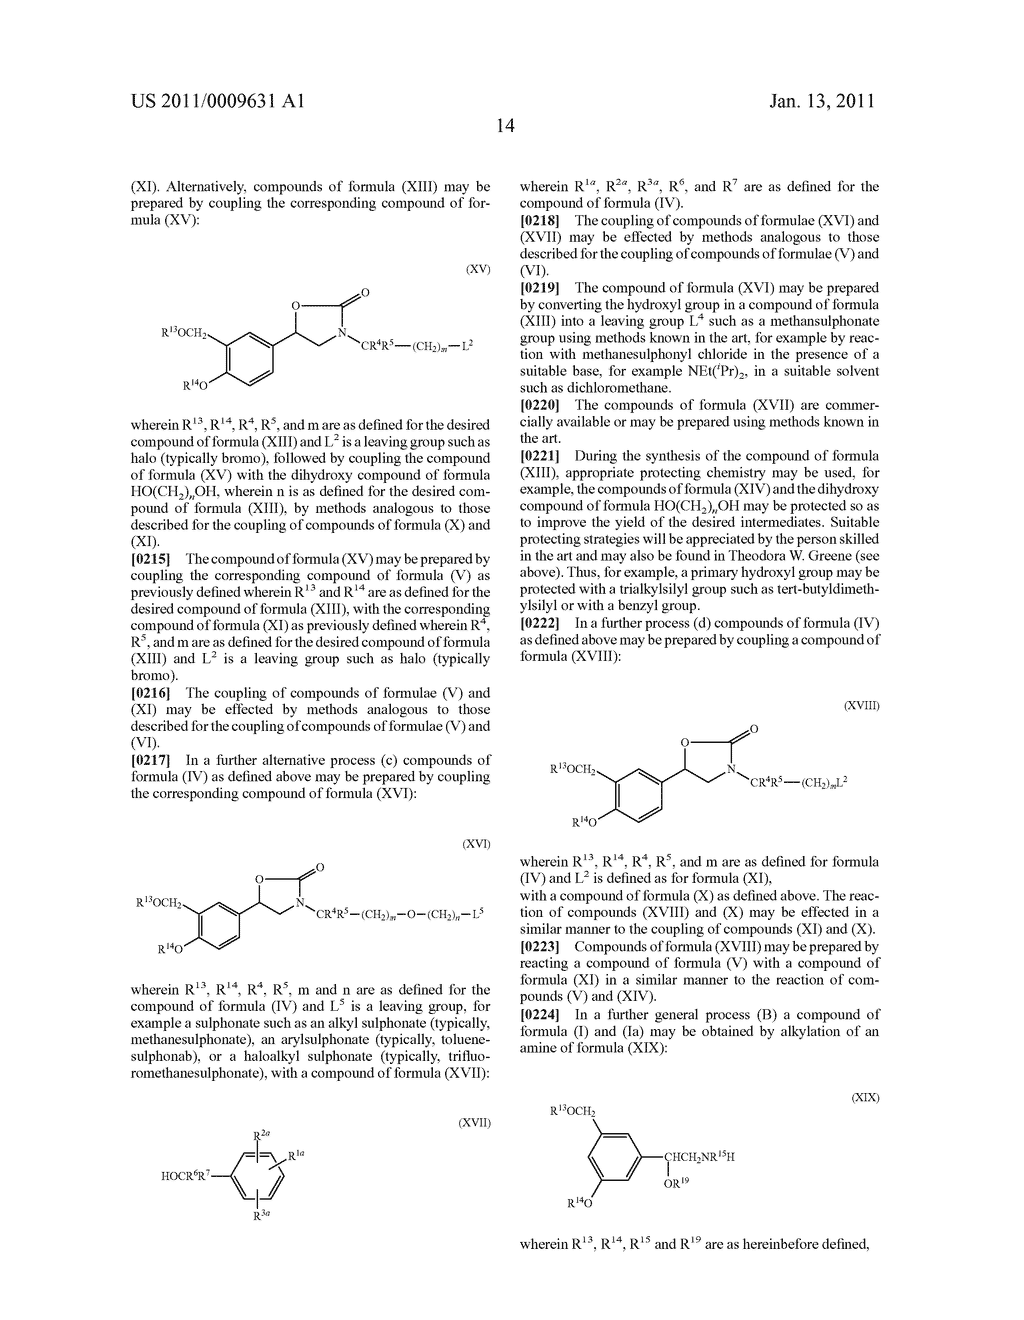 Phenethanolamine Derivatives for Treatment of Respiratory Diseases - diagram, schematic, and image 17